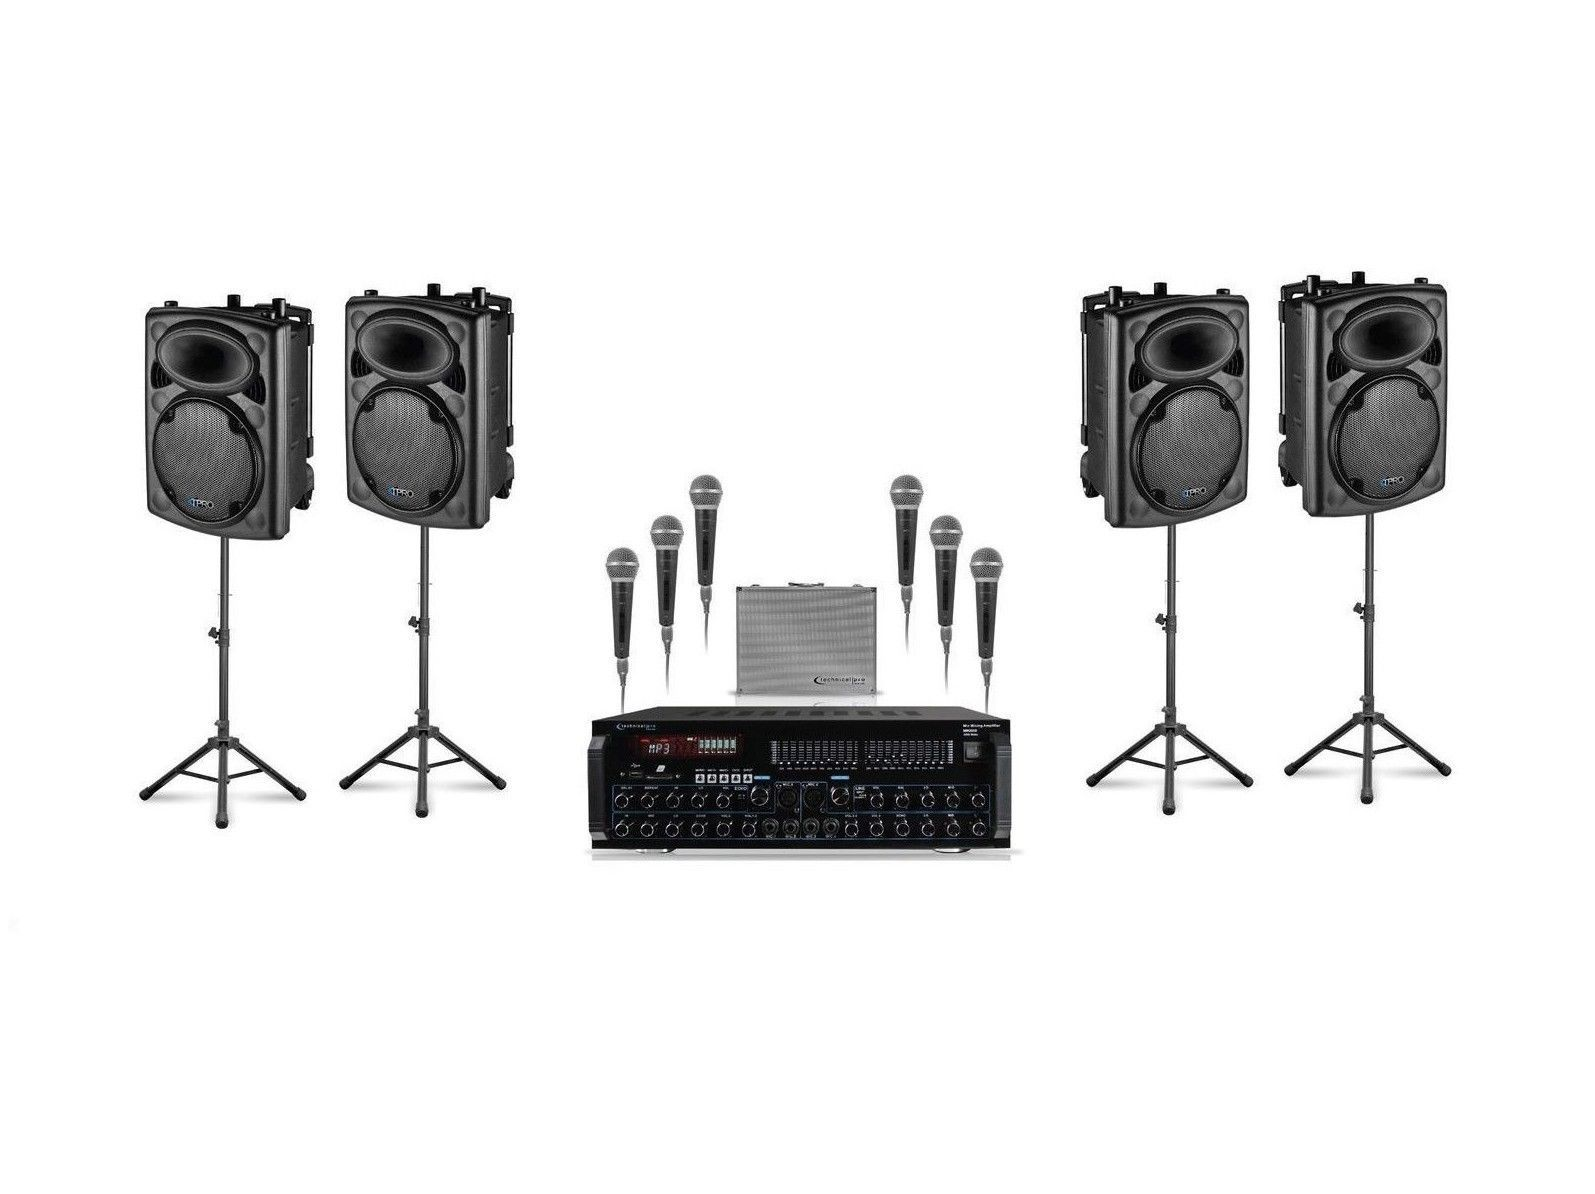 "Technical Pro QUAD 12"" Stage Speaker Amplifier 6 Microphone DJ 3000w Package"